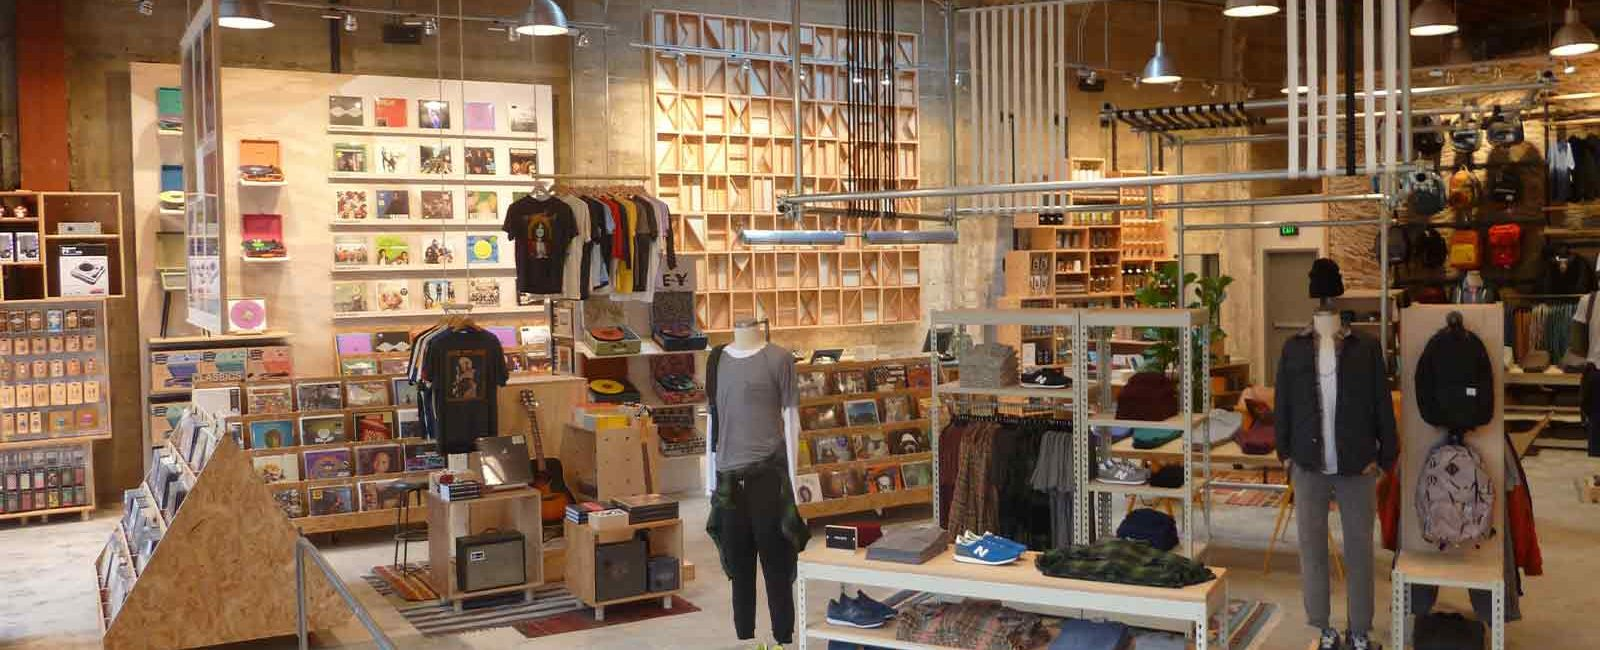 10 Best Urban Outfitters Alternative